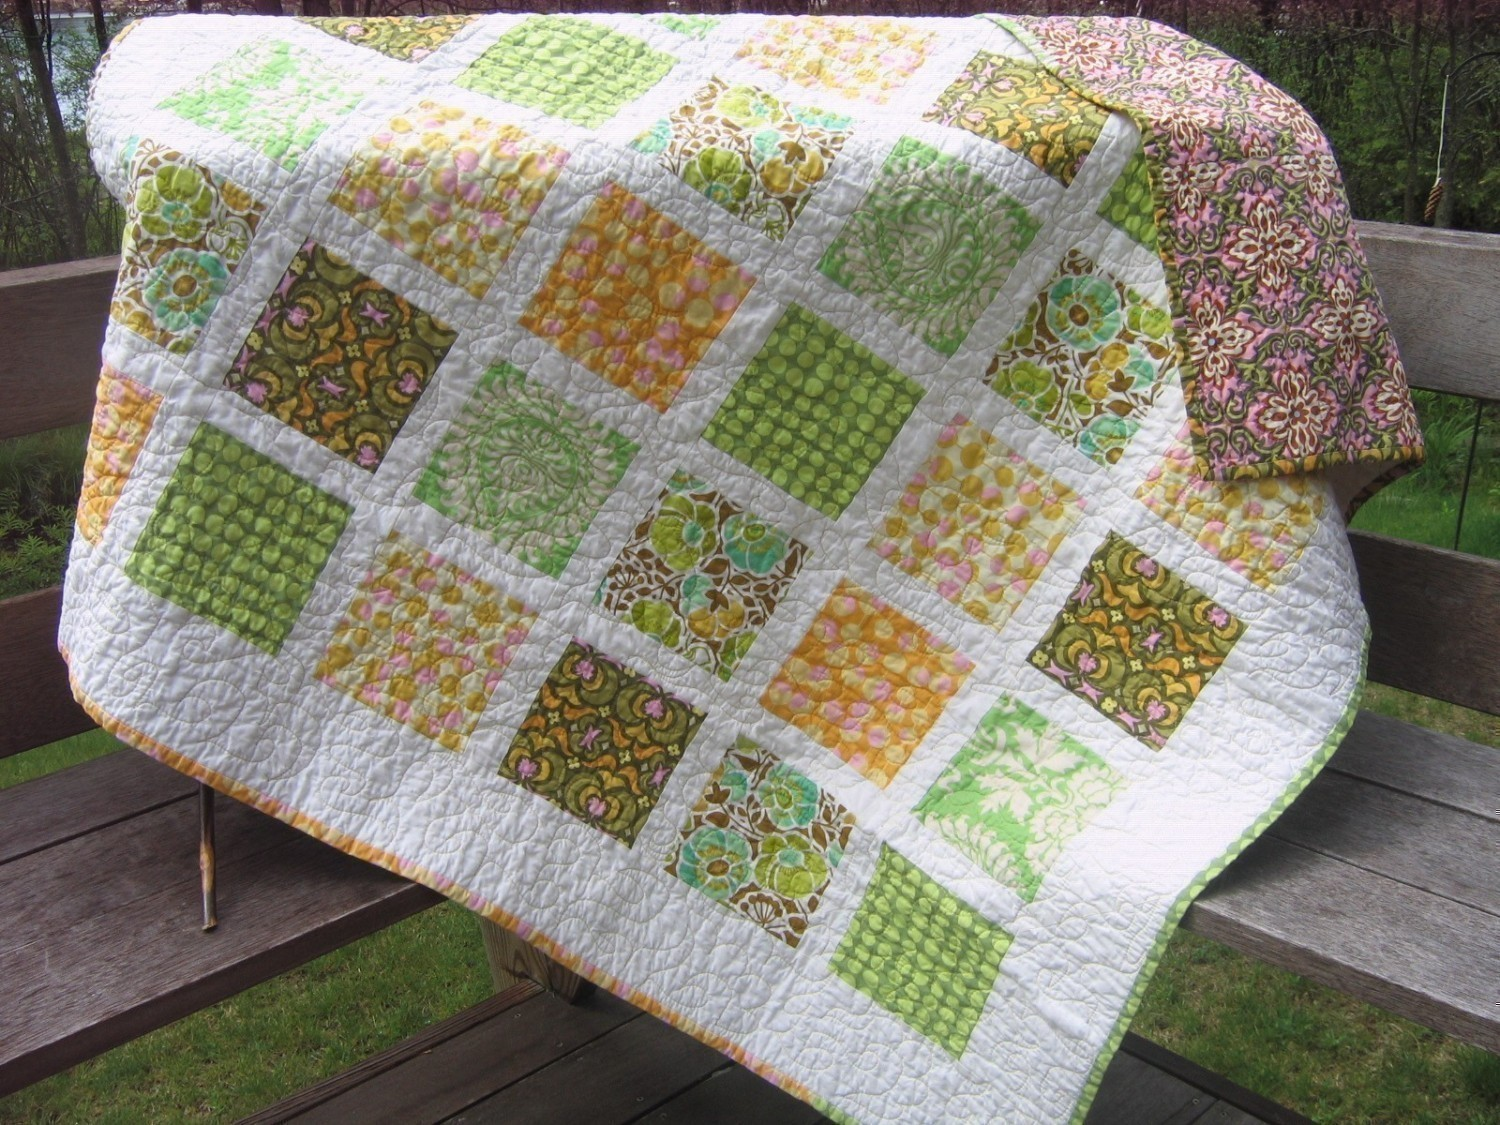 Beginners Quilting Msad 11 Adult Education